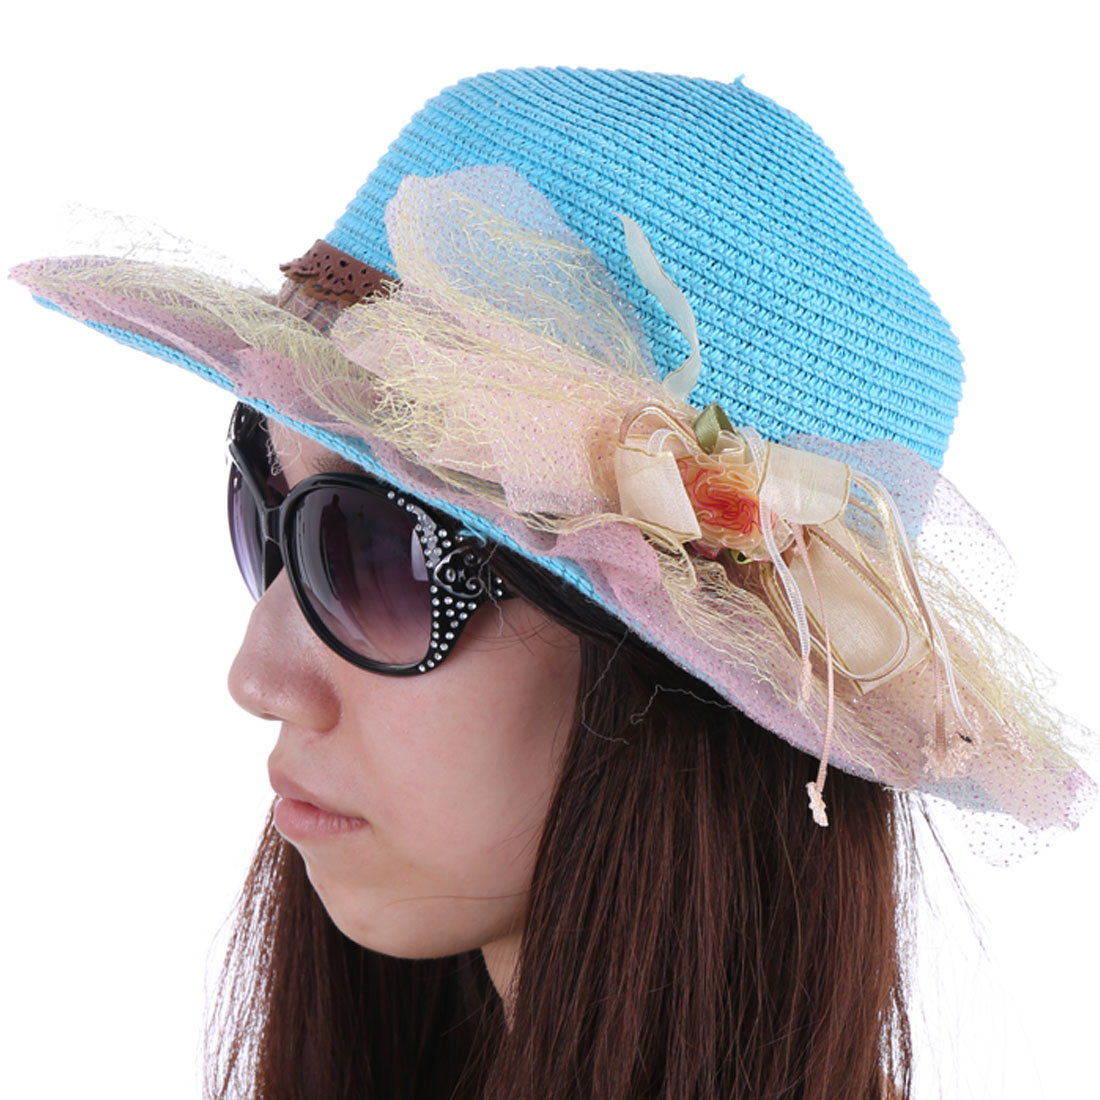 Woman Chic Pink Mesh Covered Sky Blue Straw Braided Sun Hat